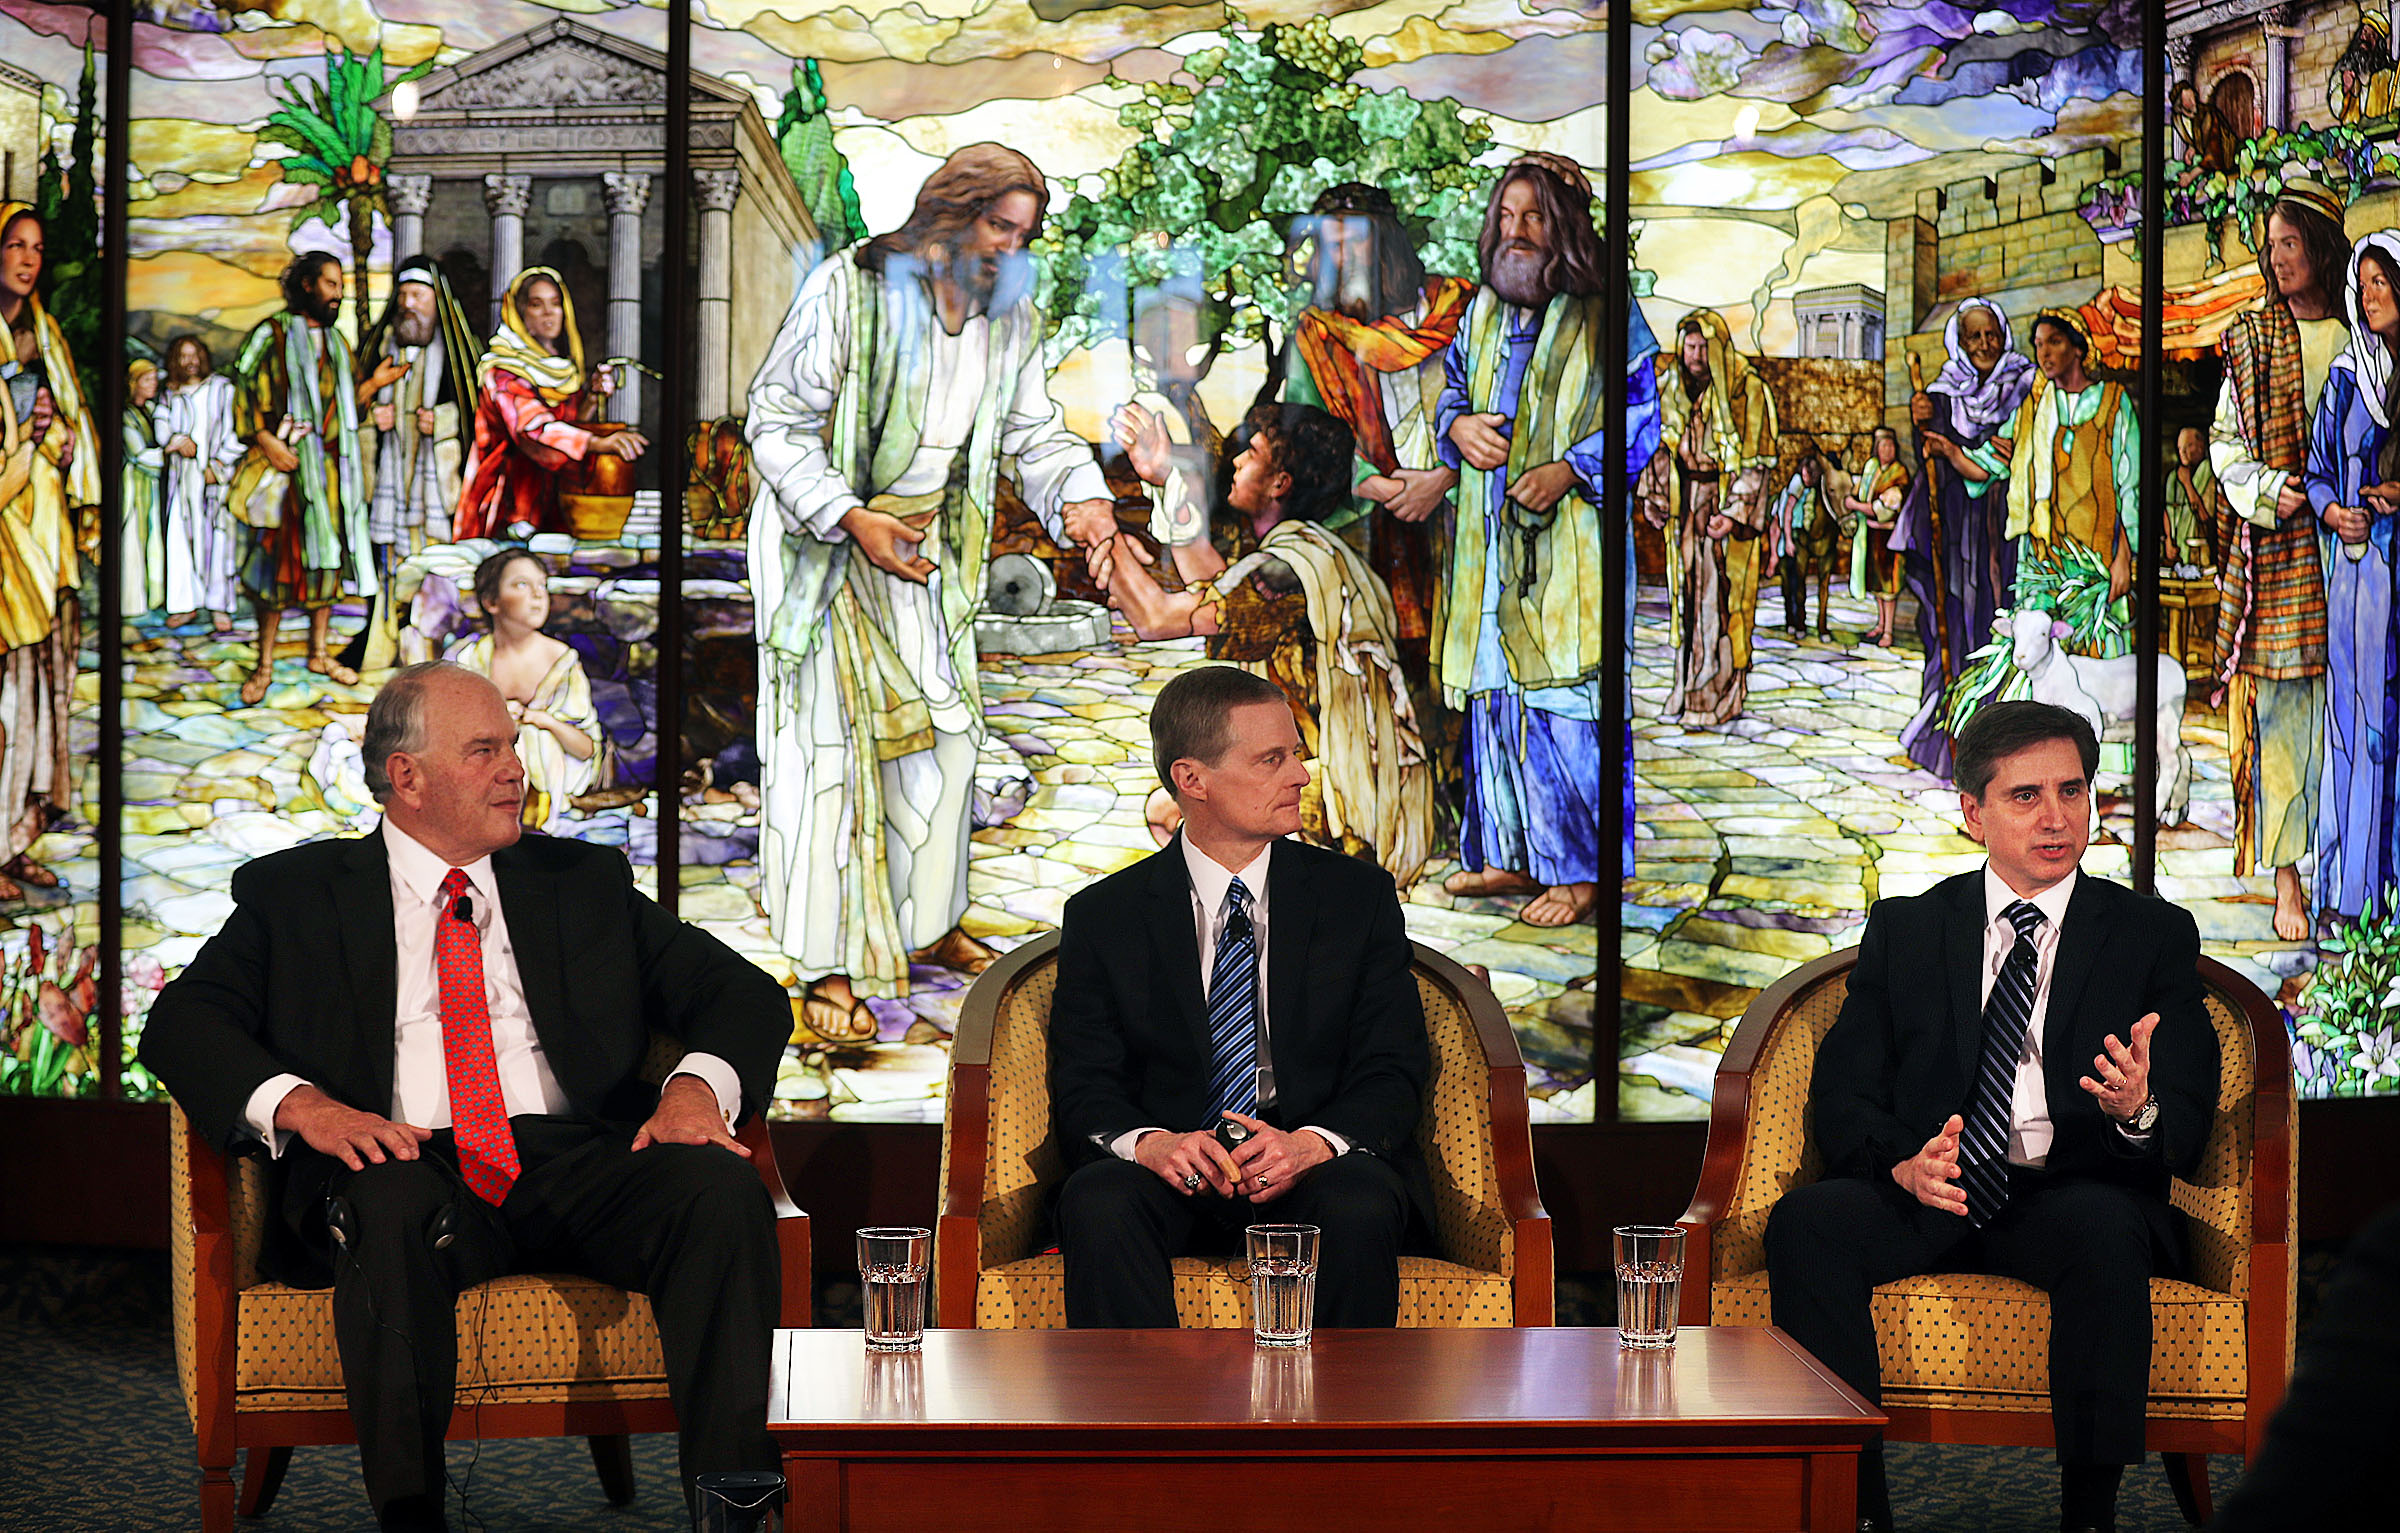 Elder Massimo De Feo, General Authority Seventy, right, speaks during a press conference in the Rome Temple Visitors' Center of The Church of Jesus Christ of Latter-day Saints on Monday, Jan. 14, 2019. At left are Elder Ronald A. Rasband, left, and Elder David A. Bednar of the Quorum of the Twelve Apostles.